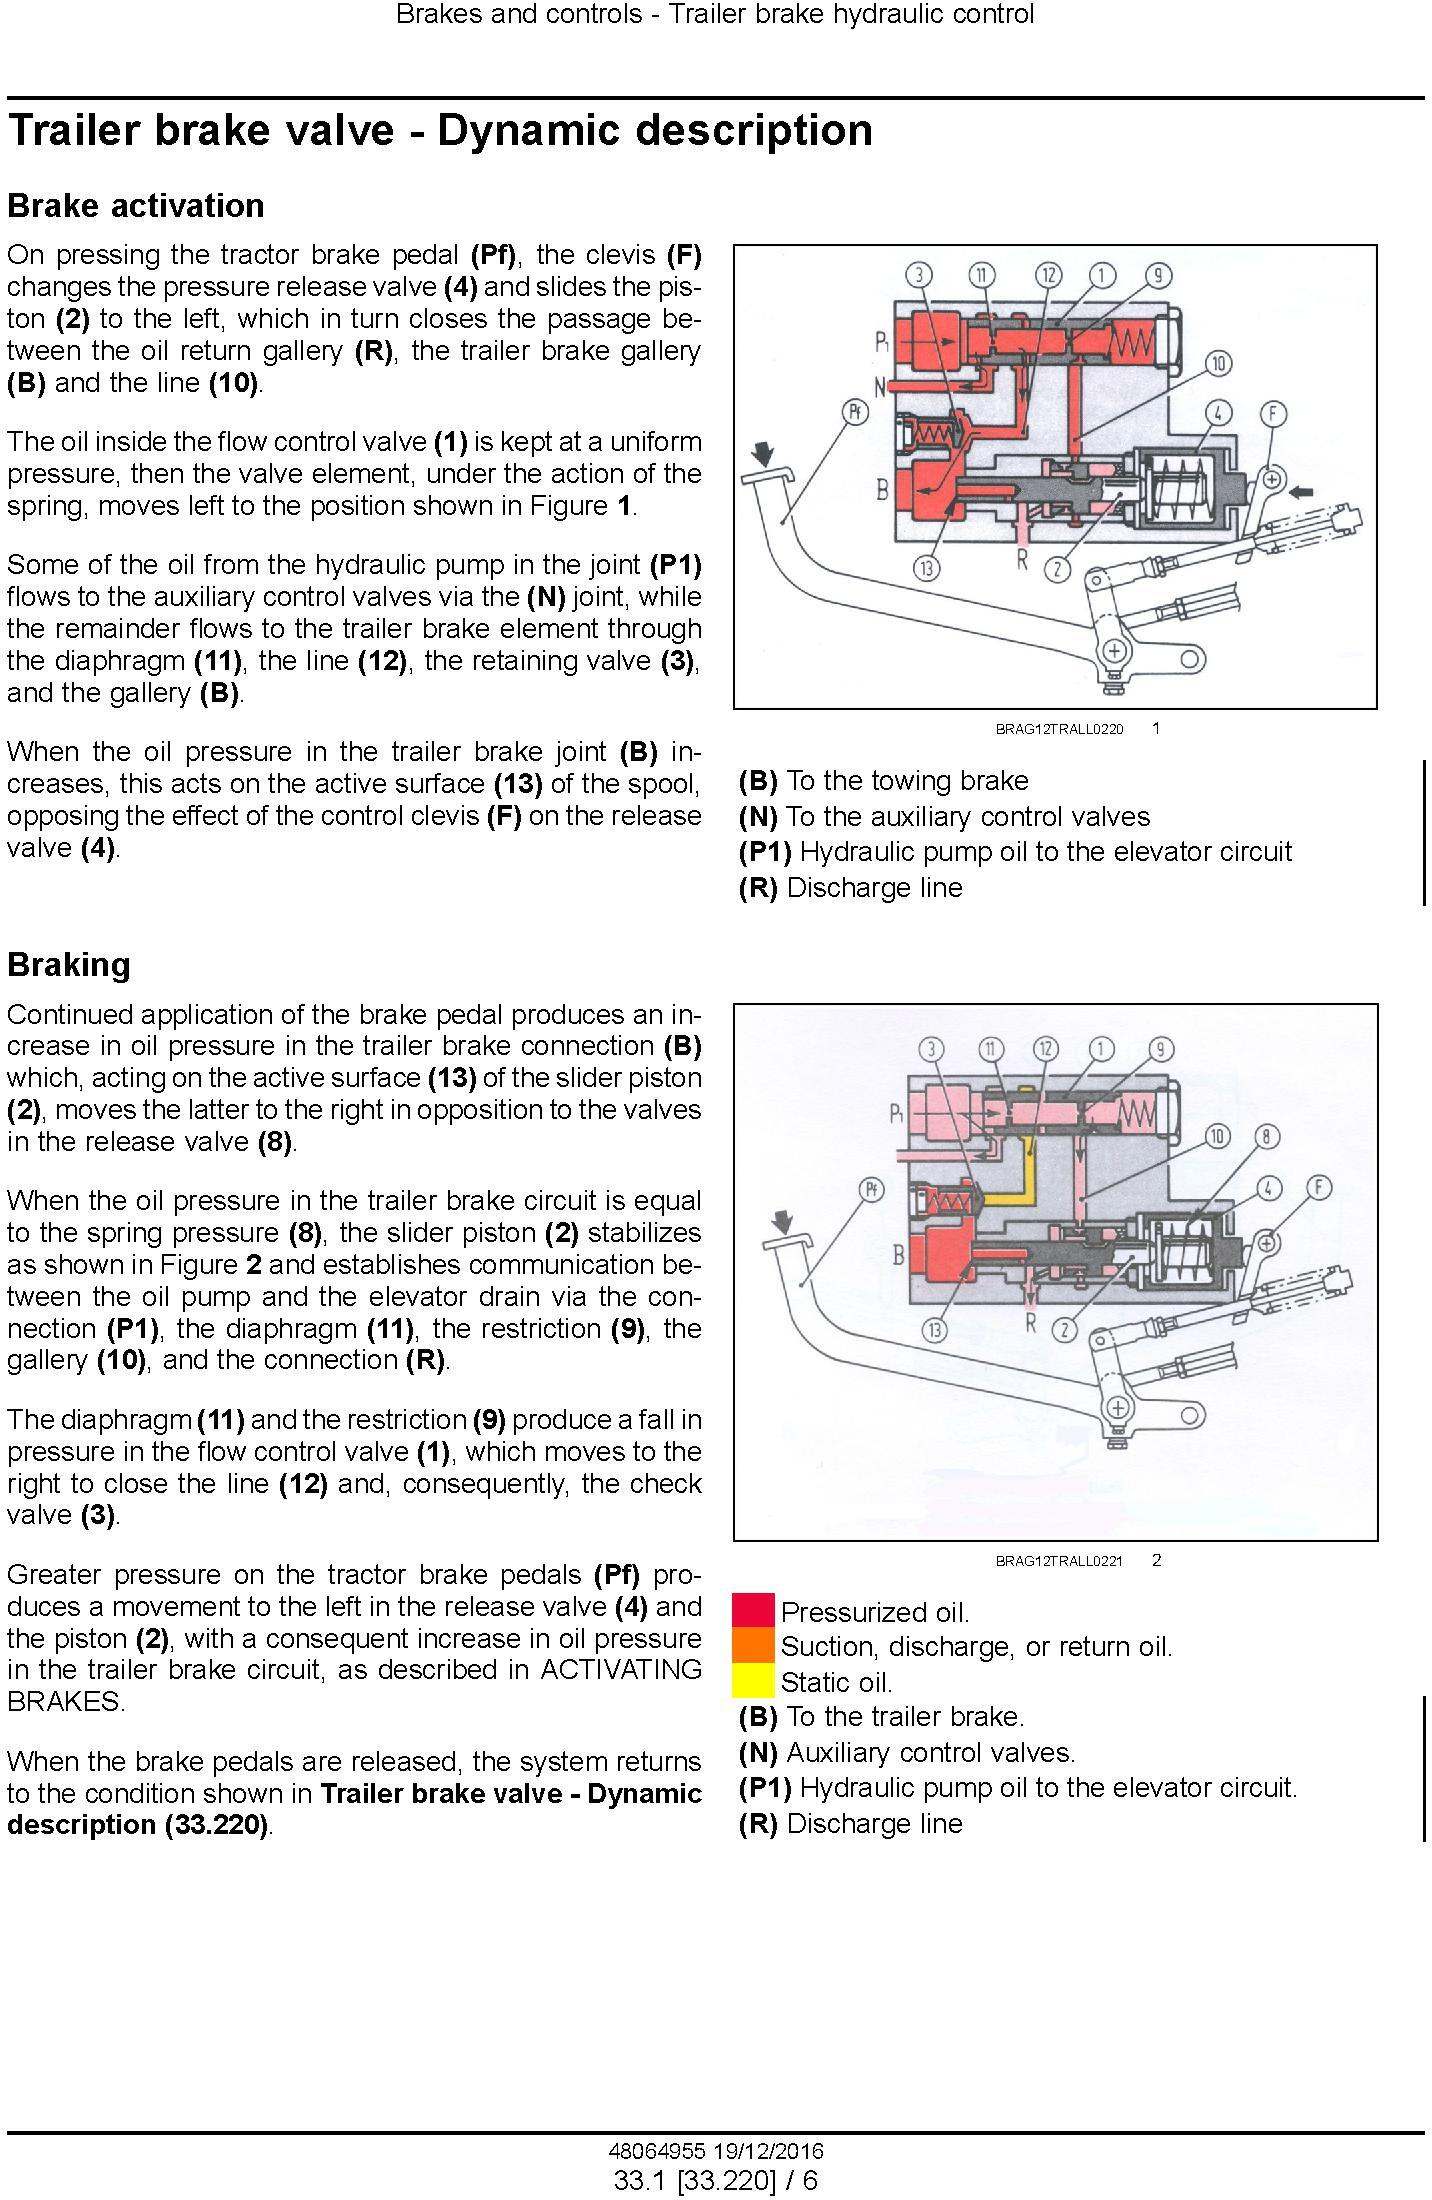 New Holland TD4020F, TD4030F, TD4040F Tractor Service Manual (Europe) - 2